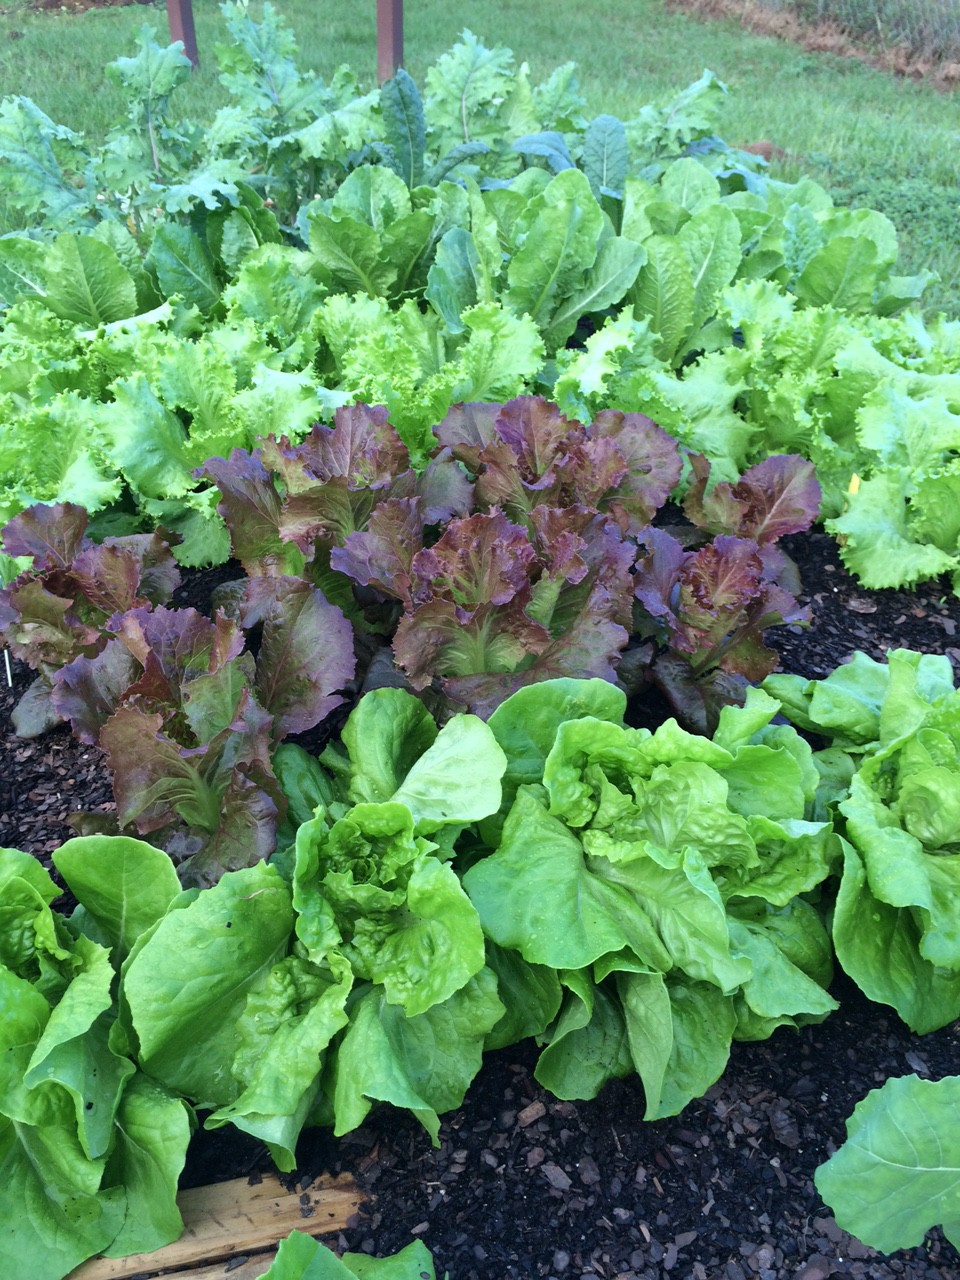 assorted lettuces in fall garden photo by molly jameson - Fall Vegetable Garden